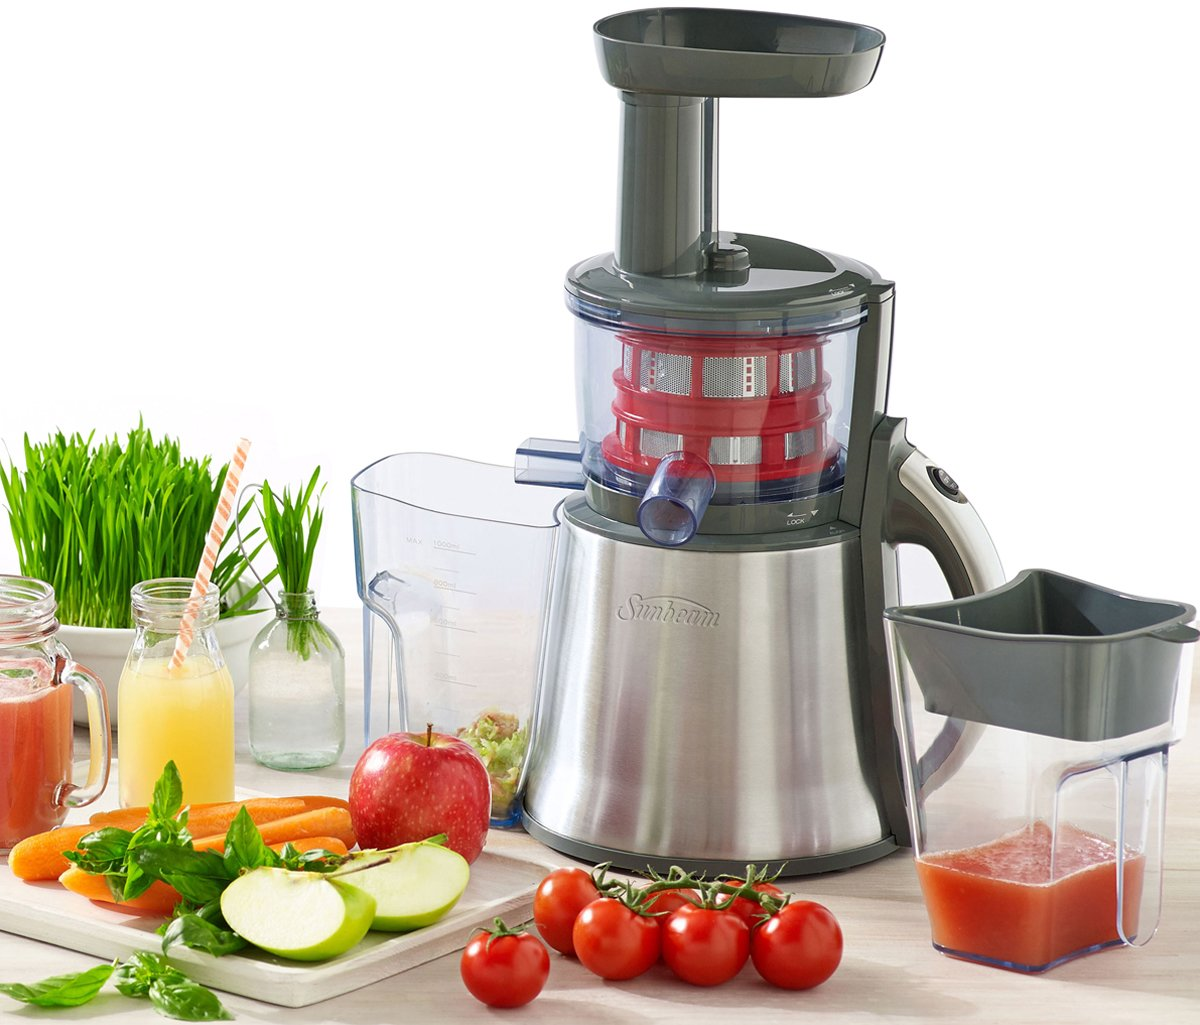 Je9000 Slow Juicer Stainless Steel : NEW Sunbeam JE9000 Slow Juicer eBay